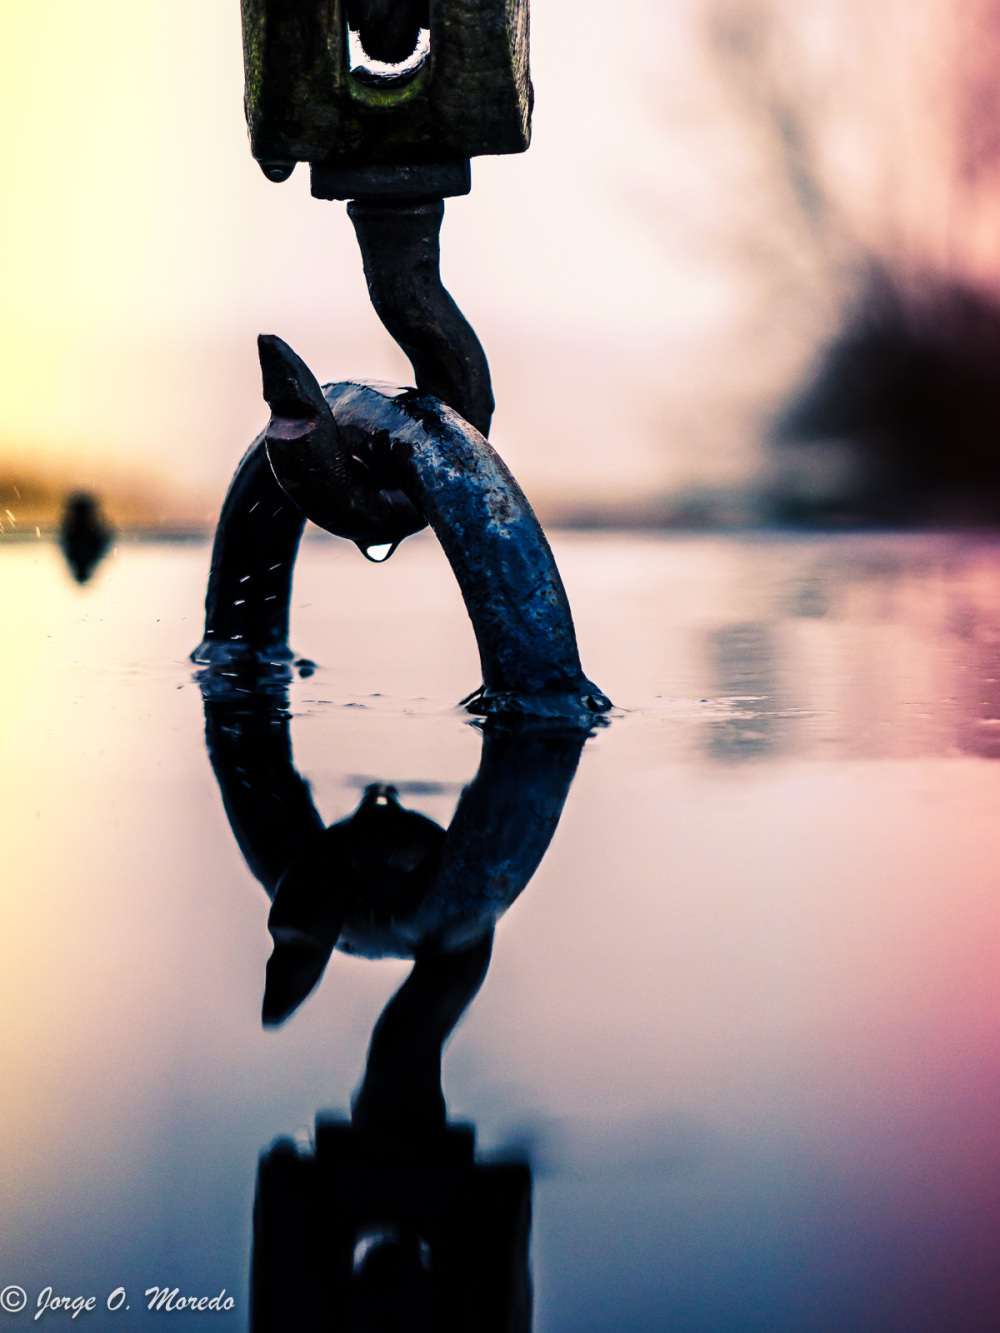 Reflection of hook on water